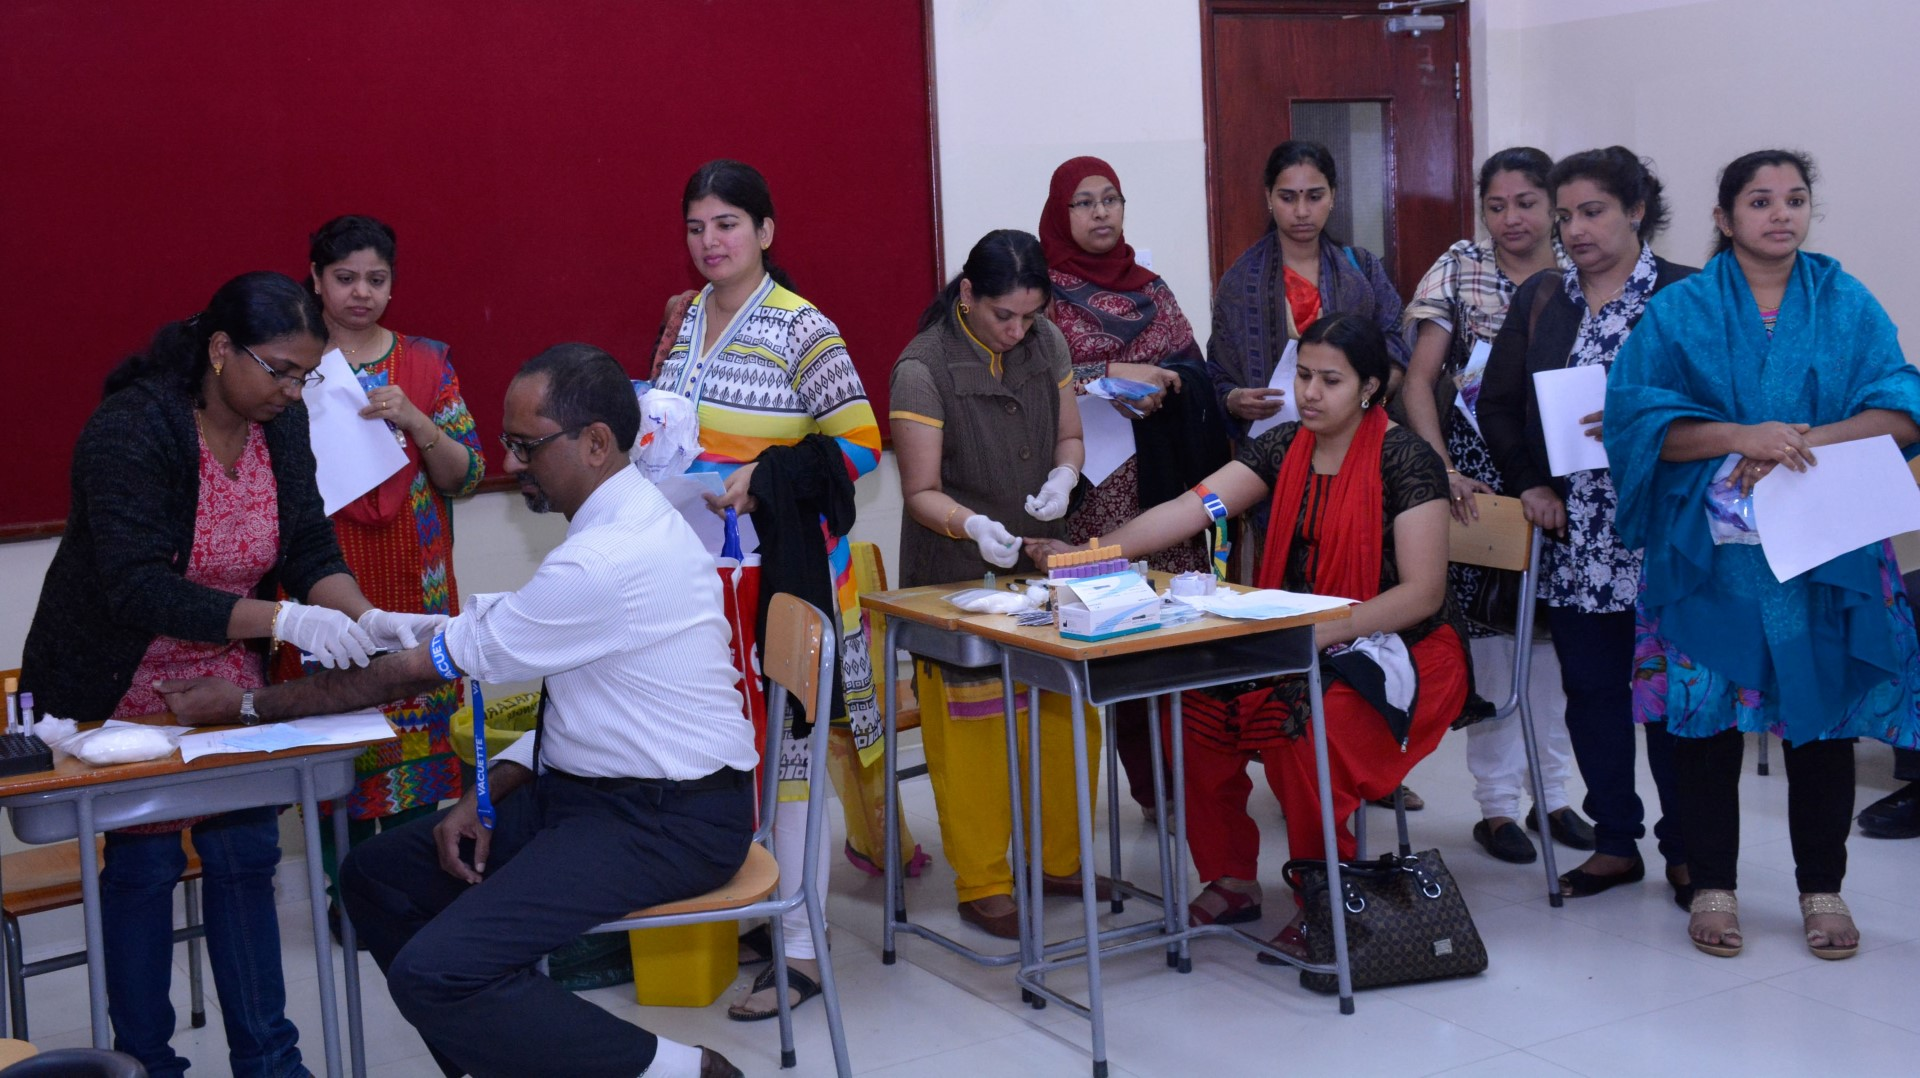 Medical services at the Indian School Saturday February 6, 2016